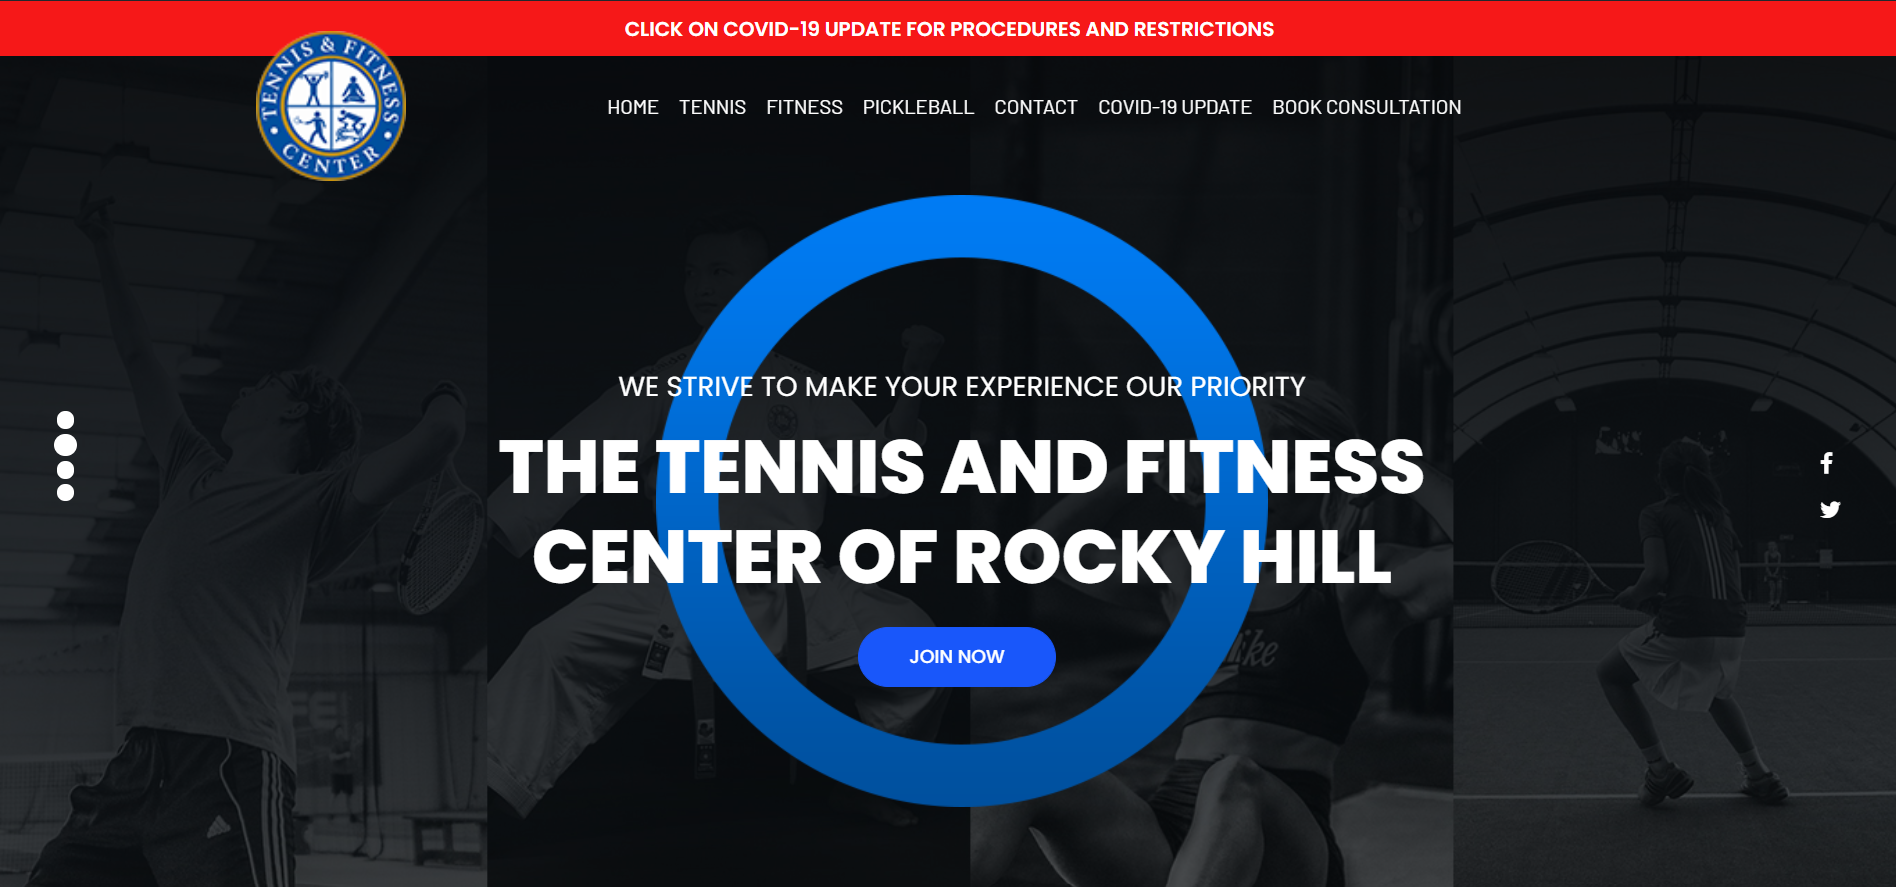 Tennis & Fitness Center of Rocky Hill